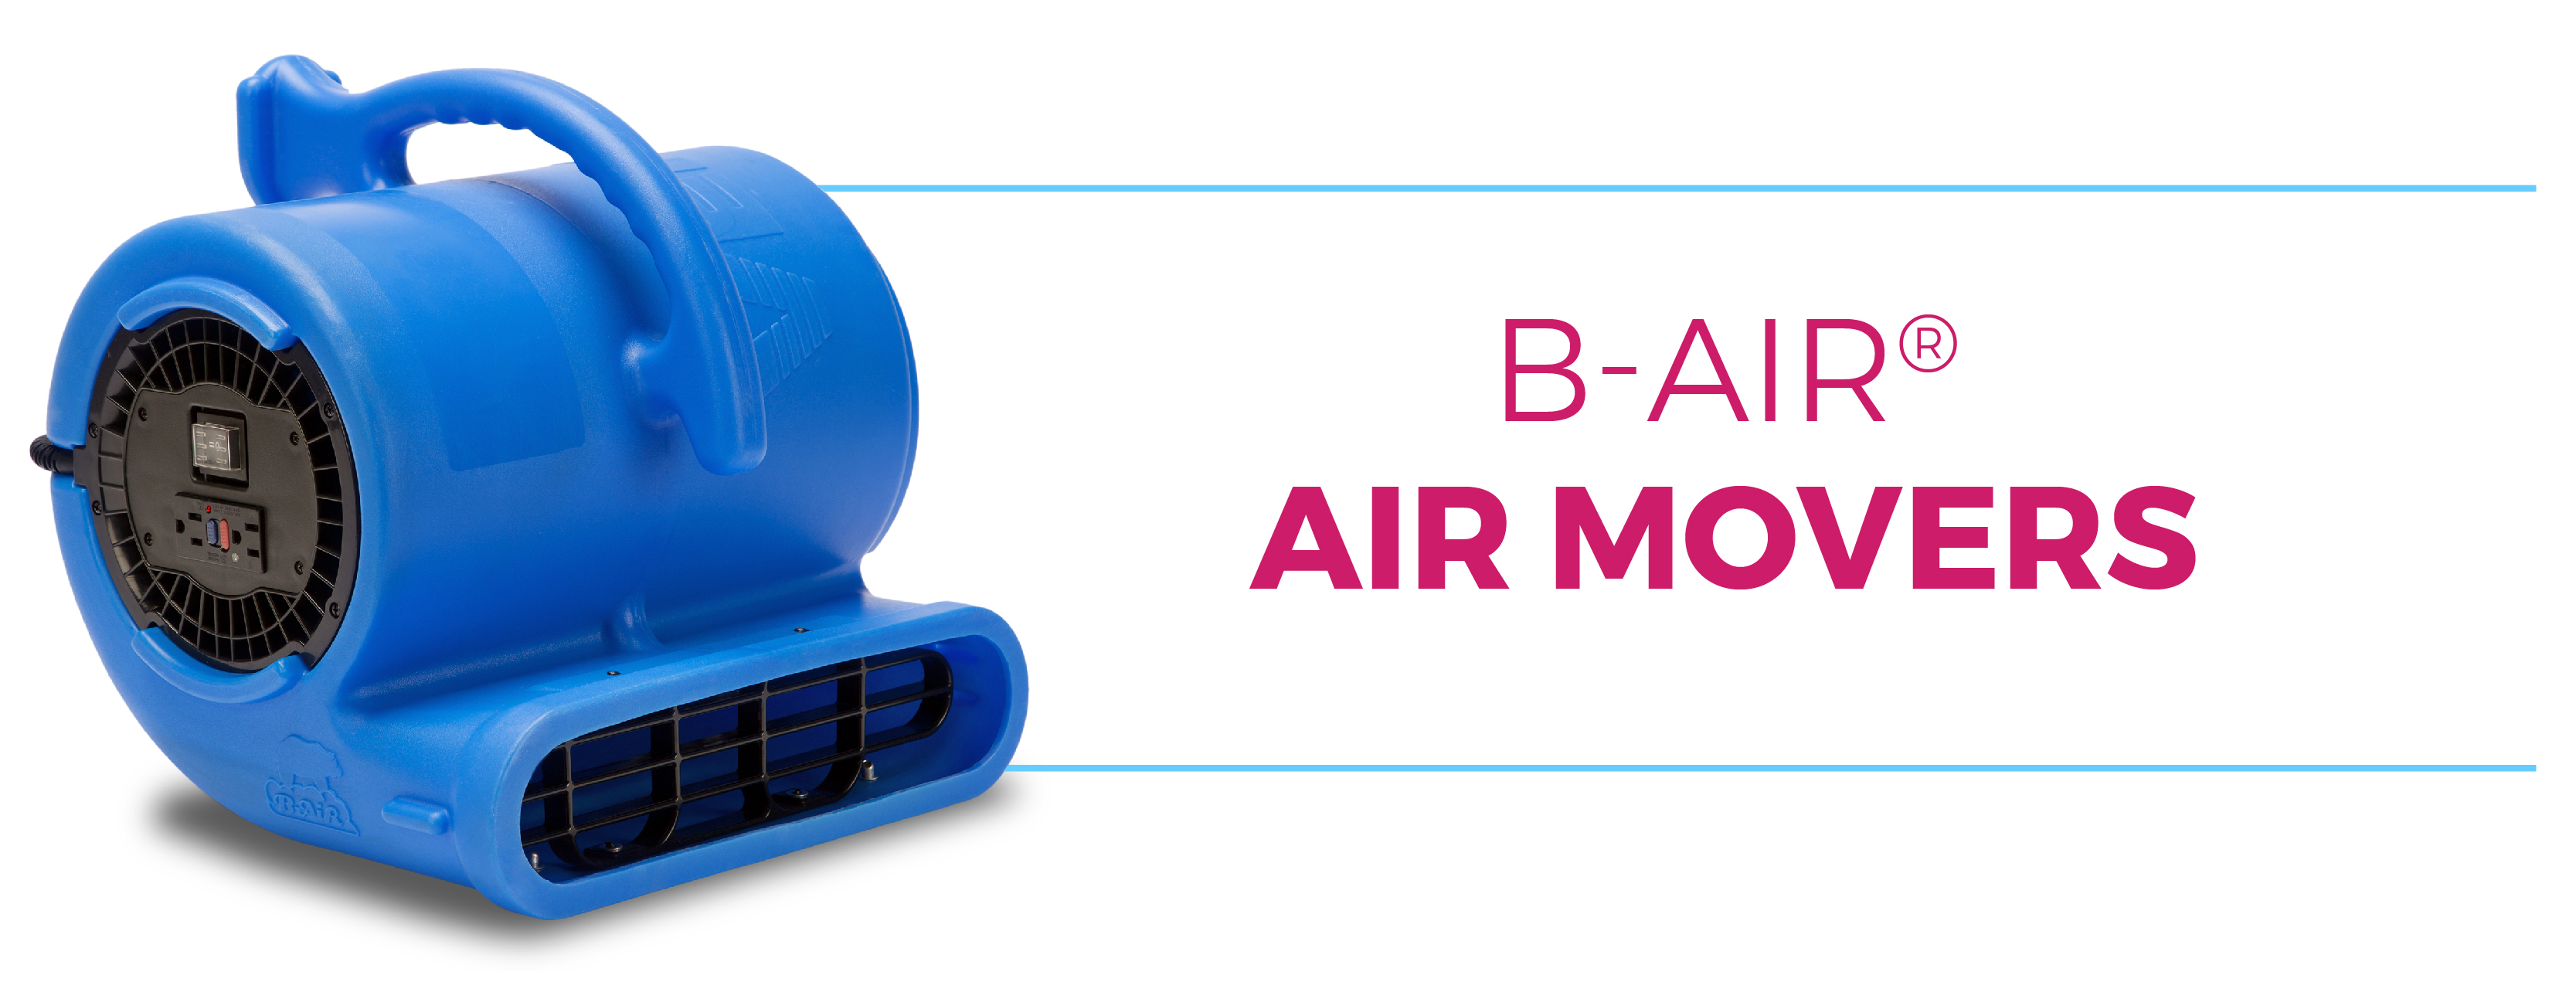 B-Air Air Movers